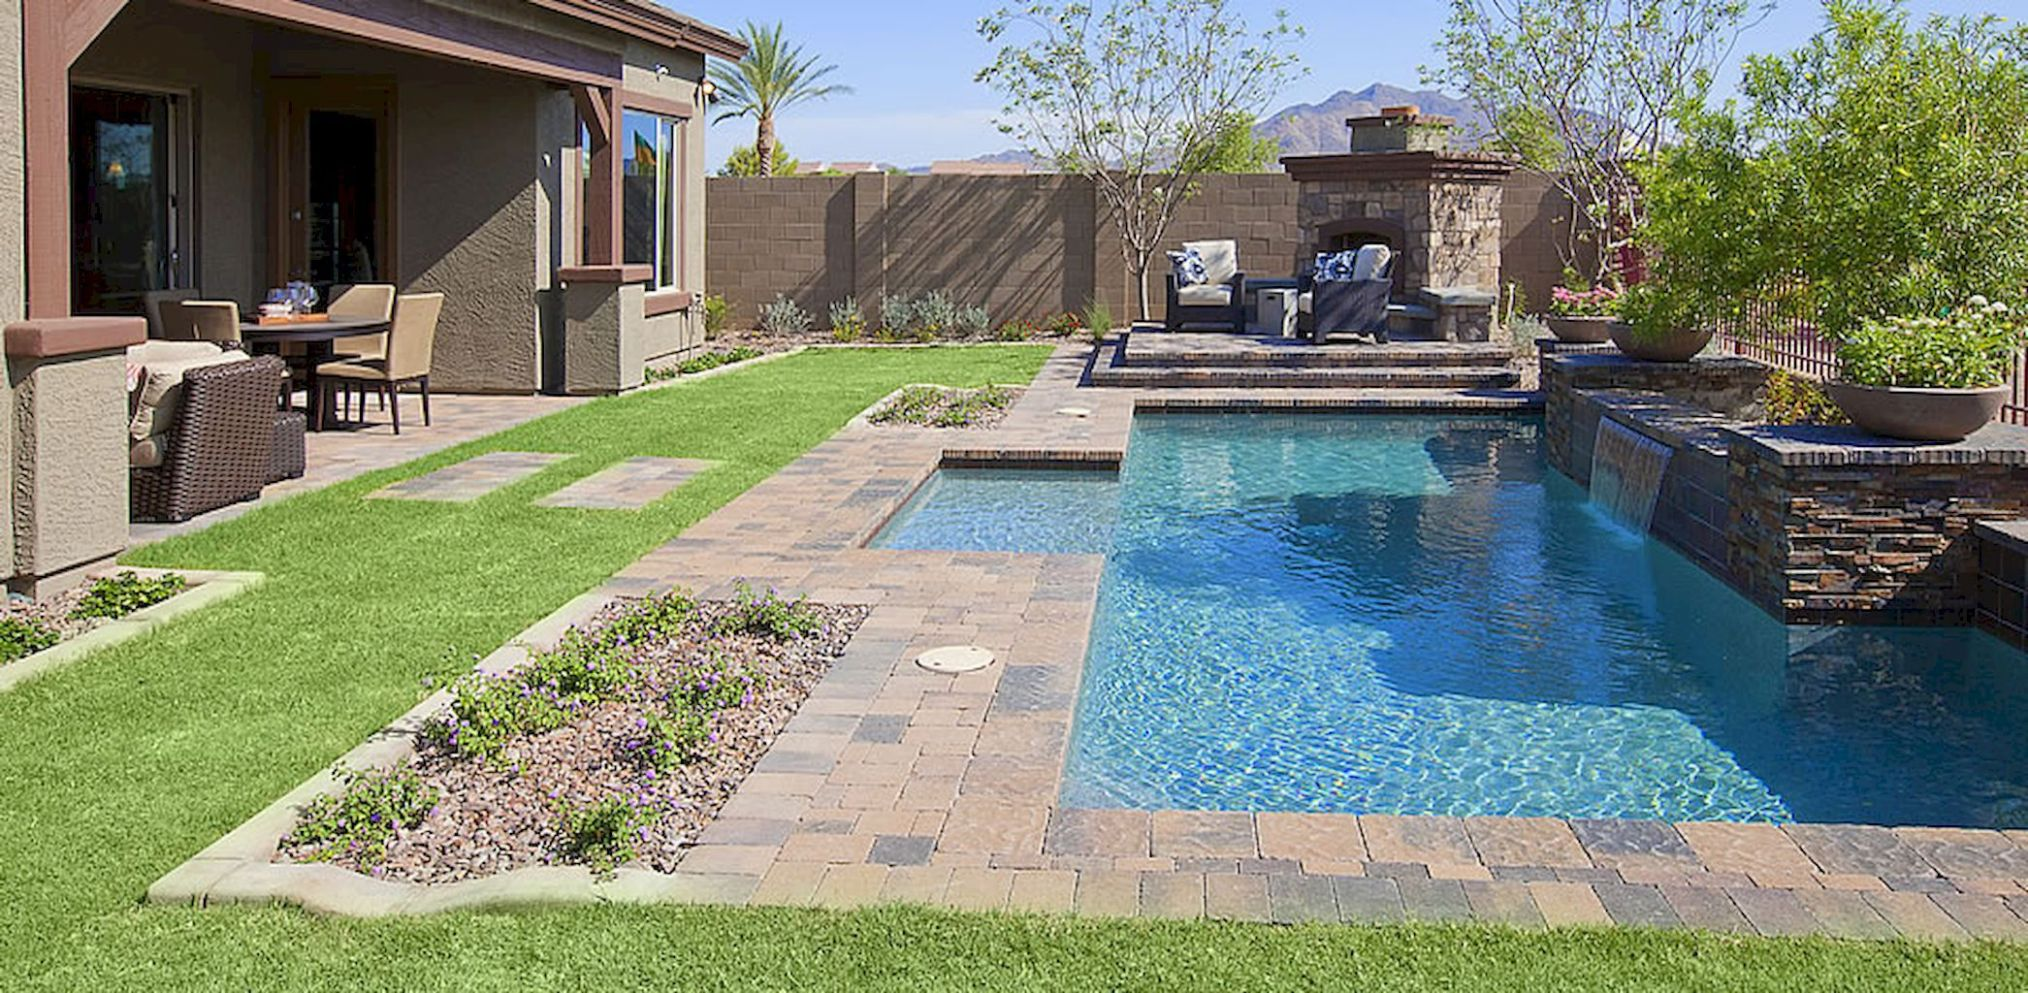 10 arizona backyard ideas on a budget (10 (With images) | Arizona ...